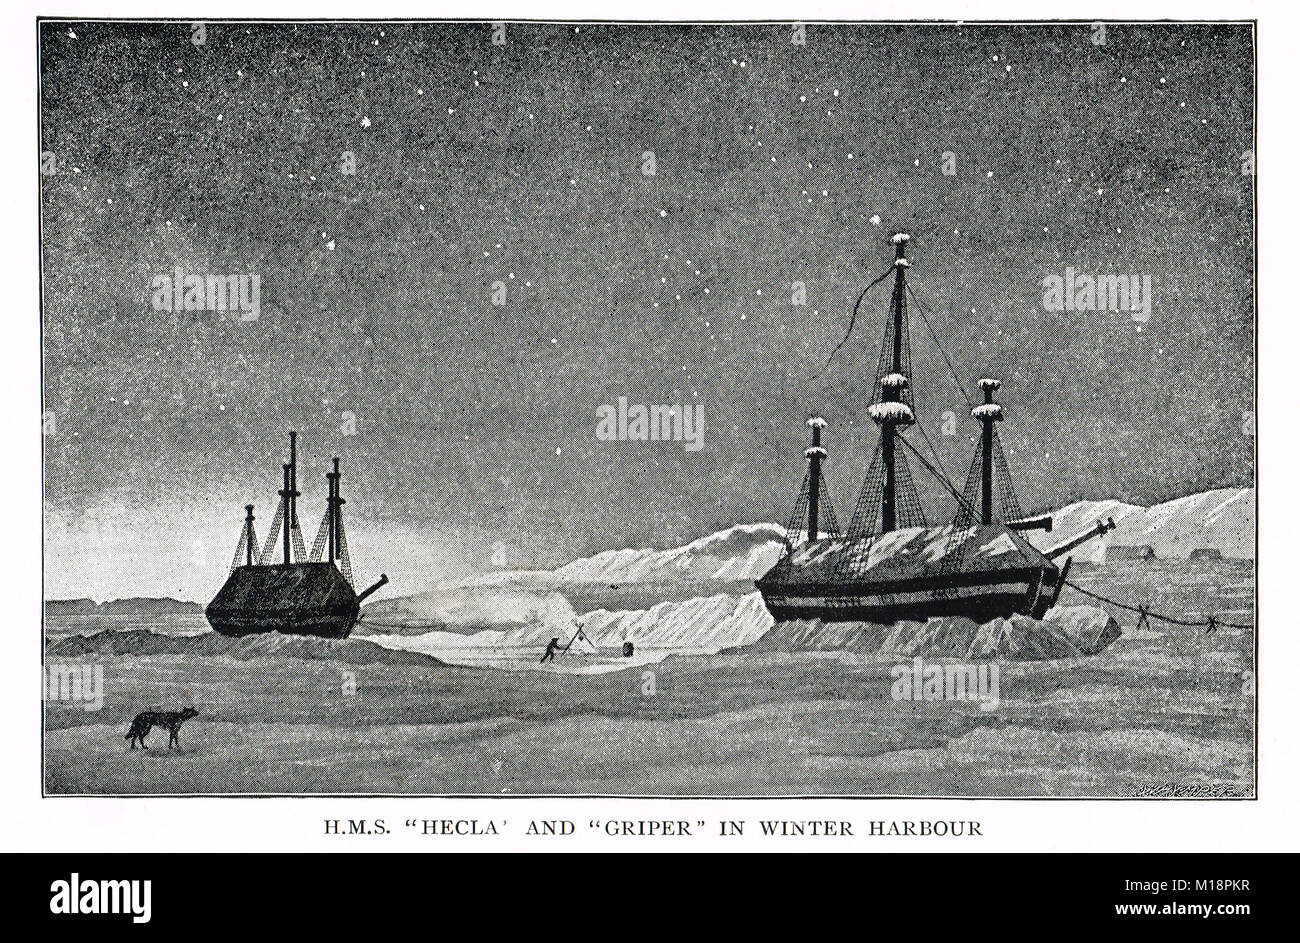 HMS Hecla & HMS Griper, in Winter harbour.  William Parry's 1819 expedition to the Arctic - Stock Image